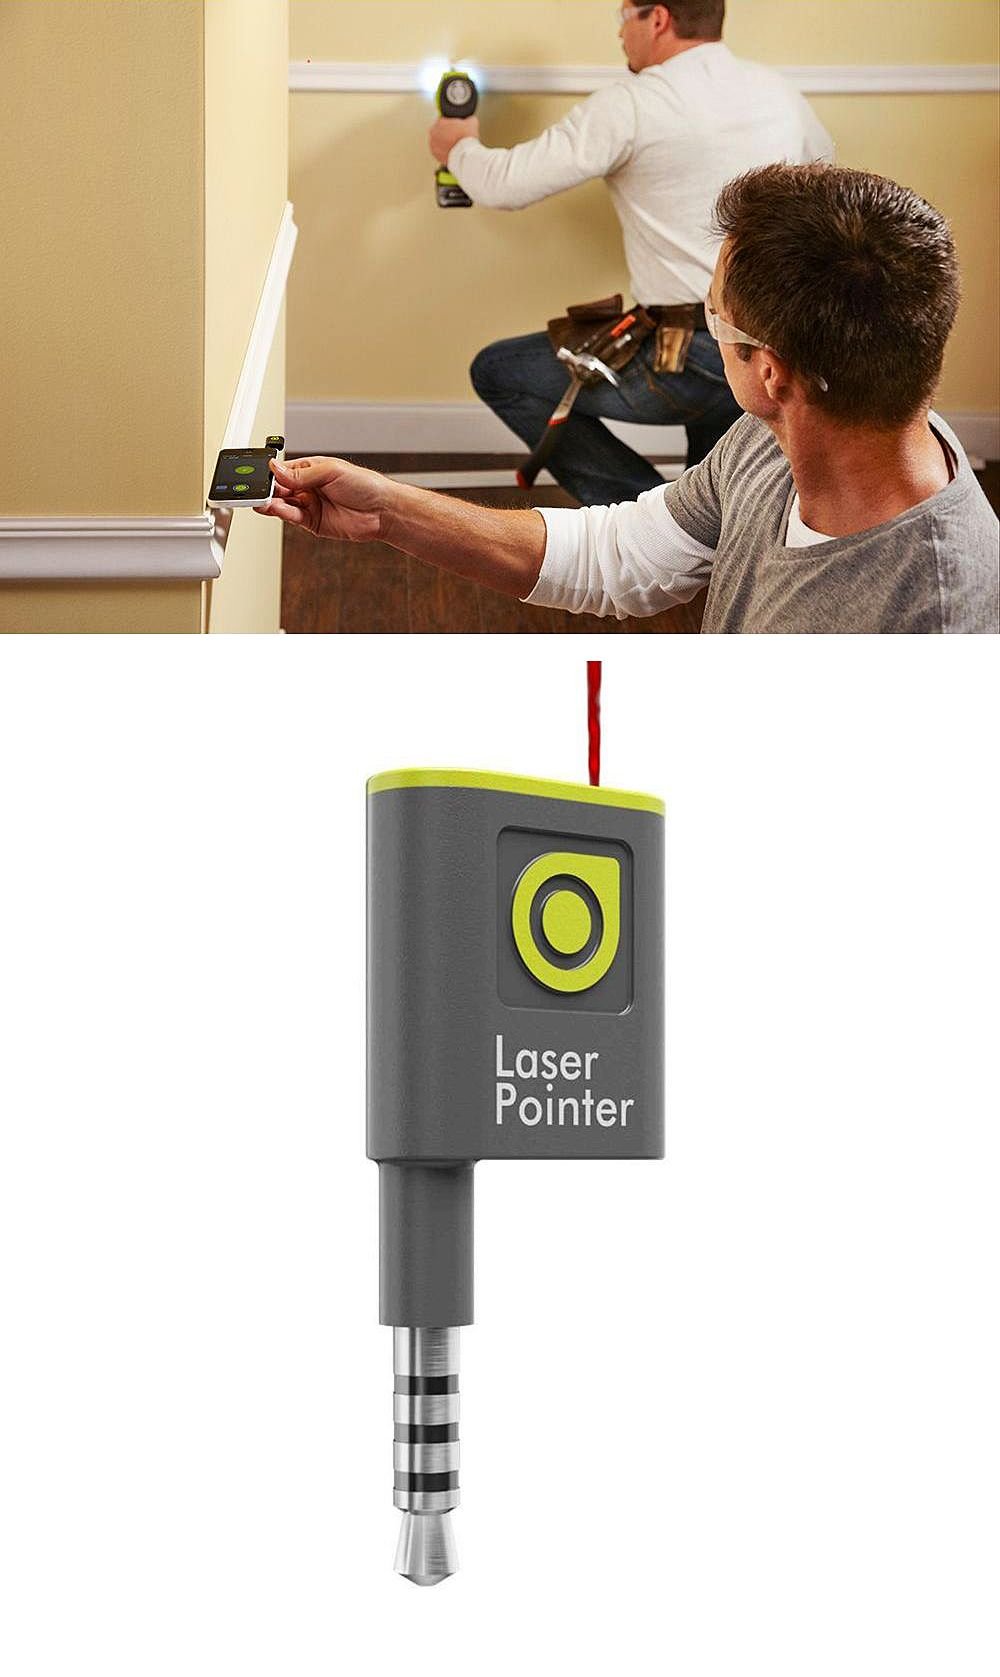 Transform your phone into a smart laser pointer and